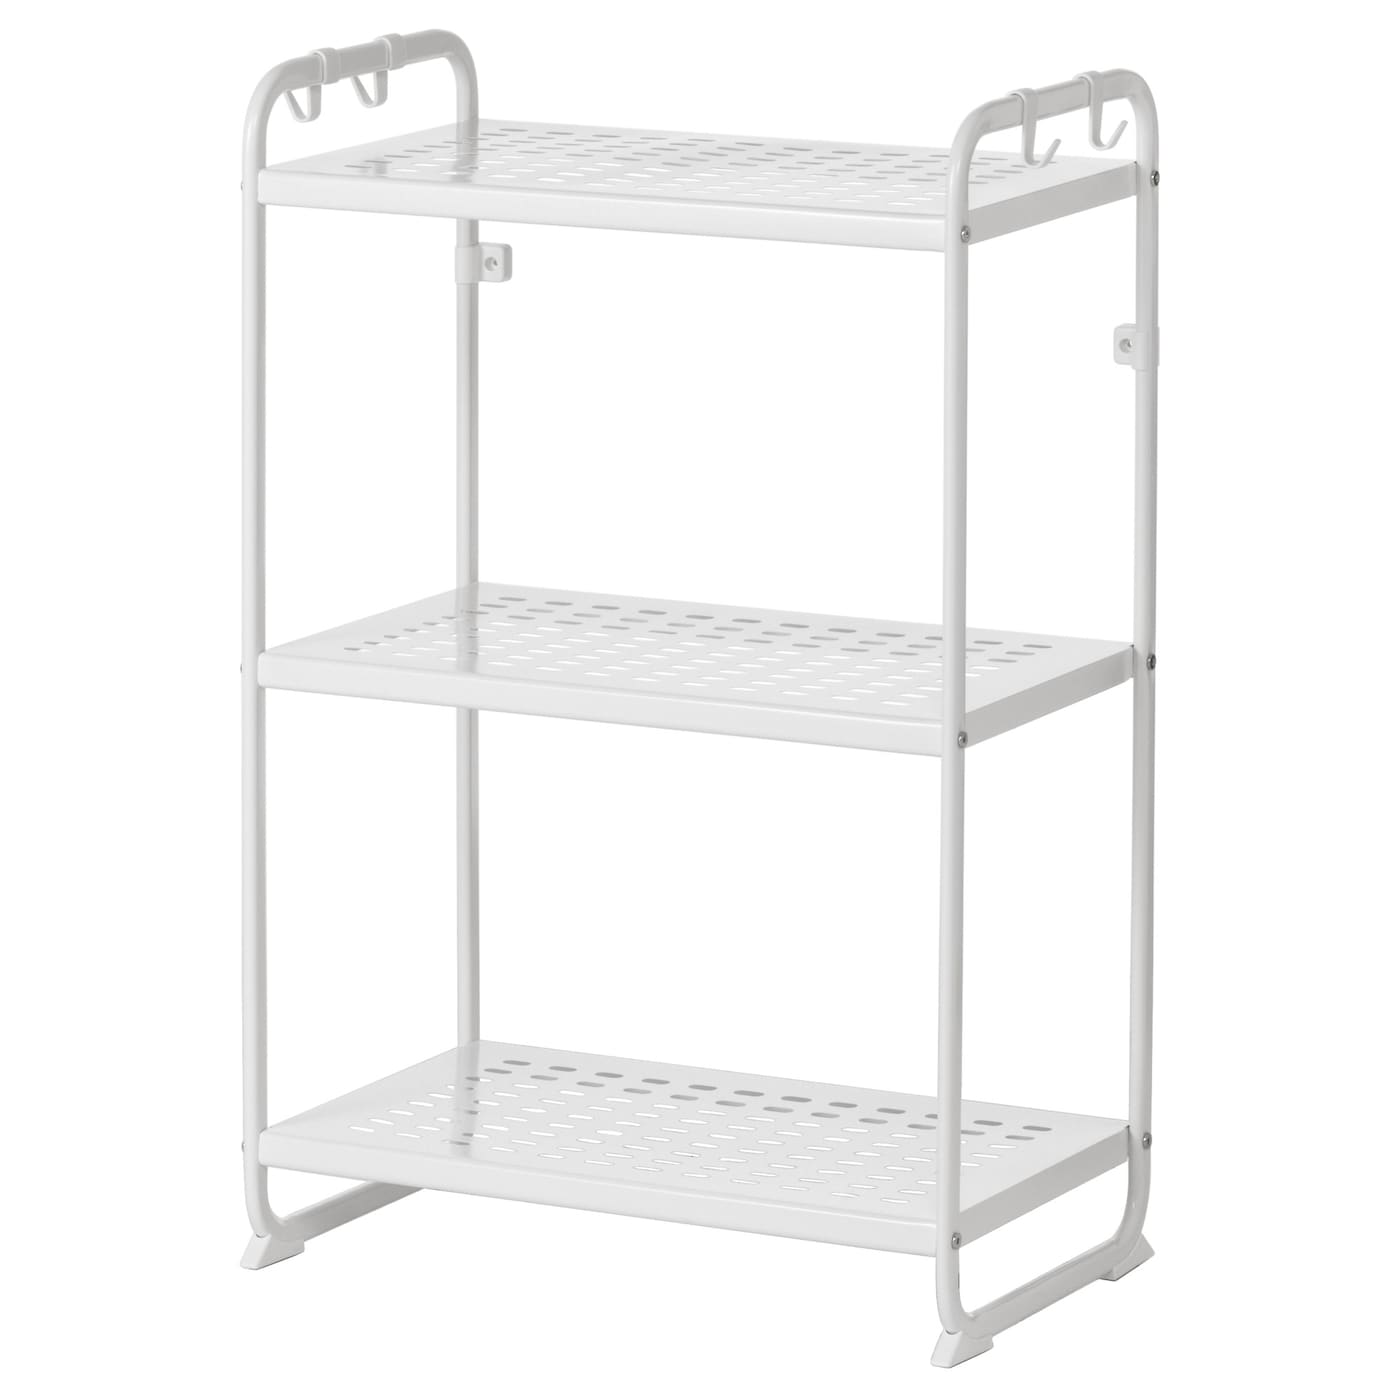 complete shelves ikea rh ikea com ikea adjustable shelving systems Adjustable Pantry Shelving DIY